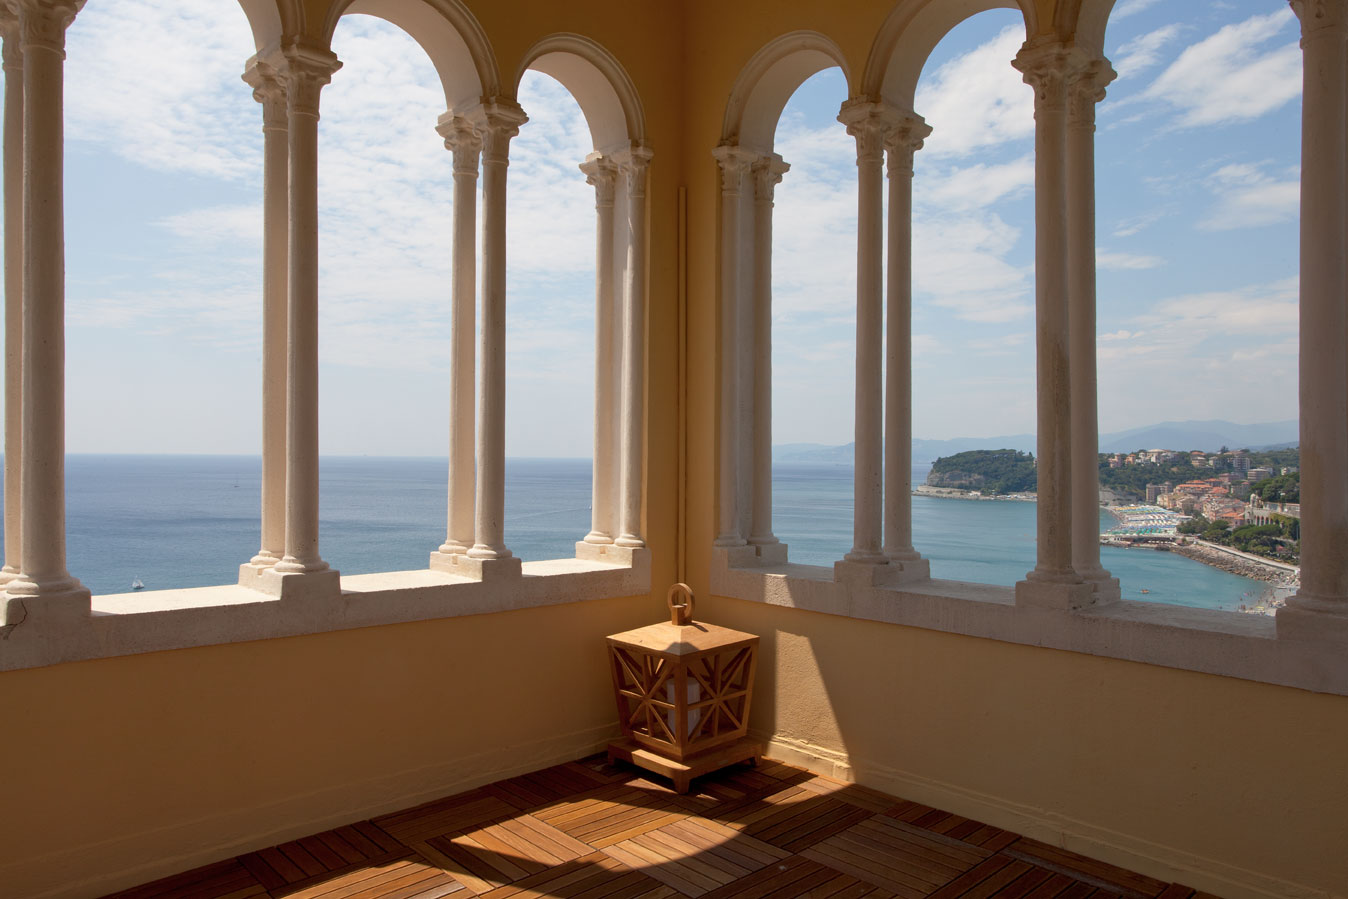 Additional photo for property listing at Art Nouveau villa overlooking the italian Riviera Celle Ligure Celle Ligure, Savona 17015 Italia